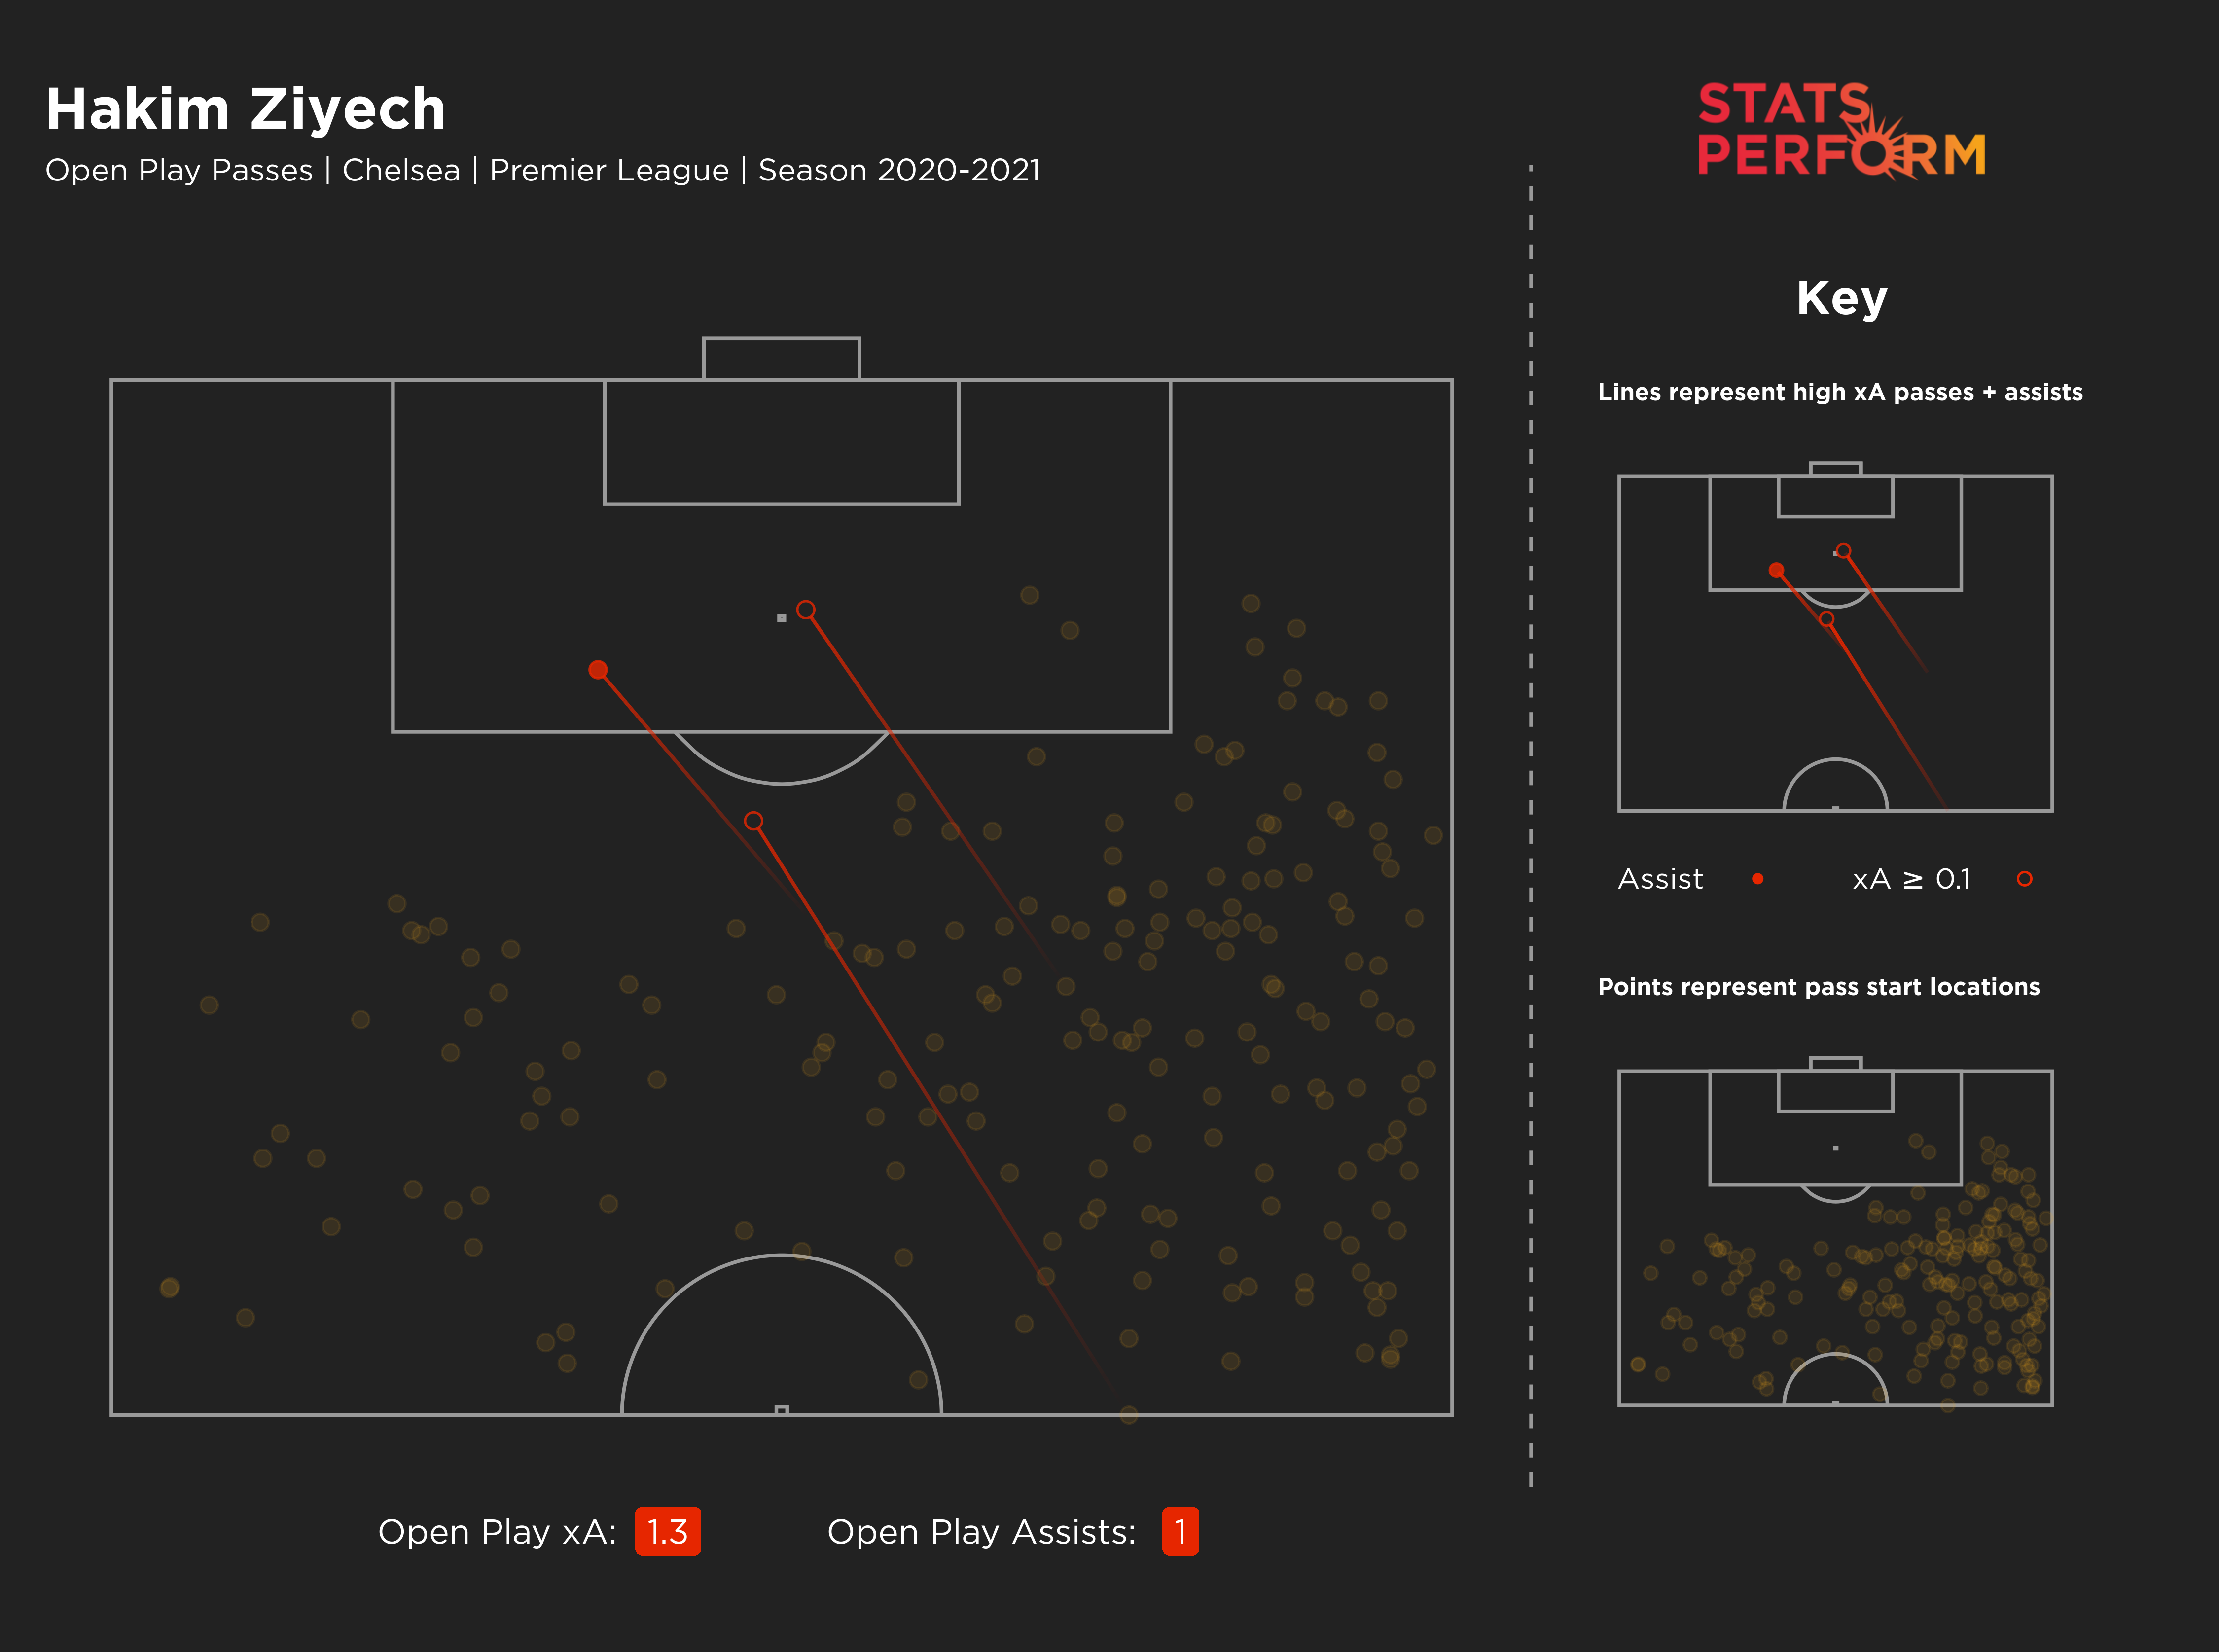 Hakim Ziyech's expected assists (xA) in open play per 90 minutes in the Premier League this season is the same as Kevin De Bruyne's